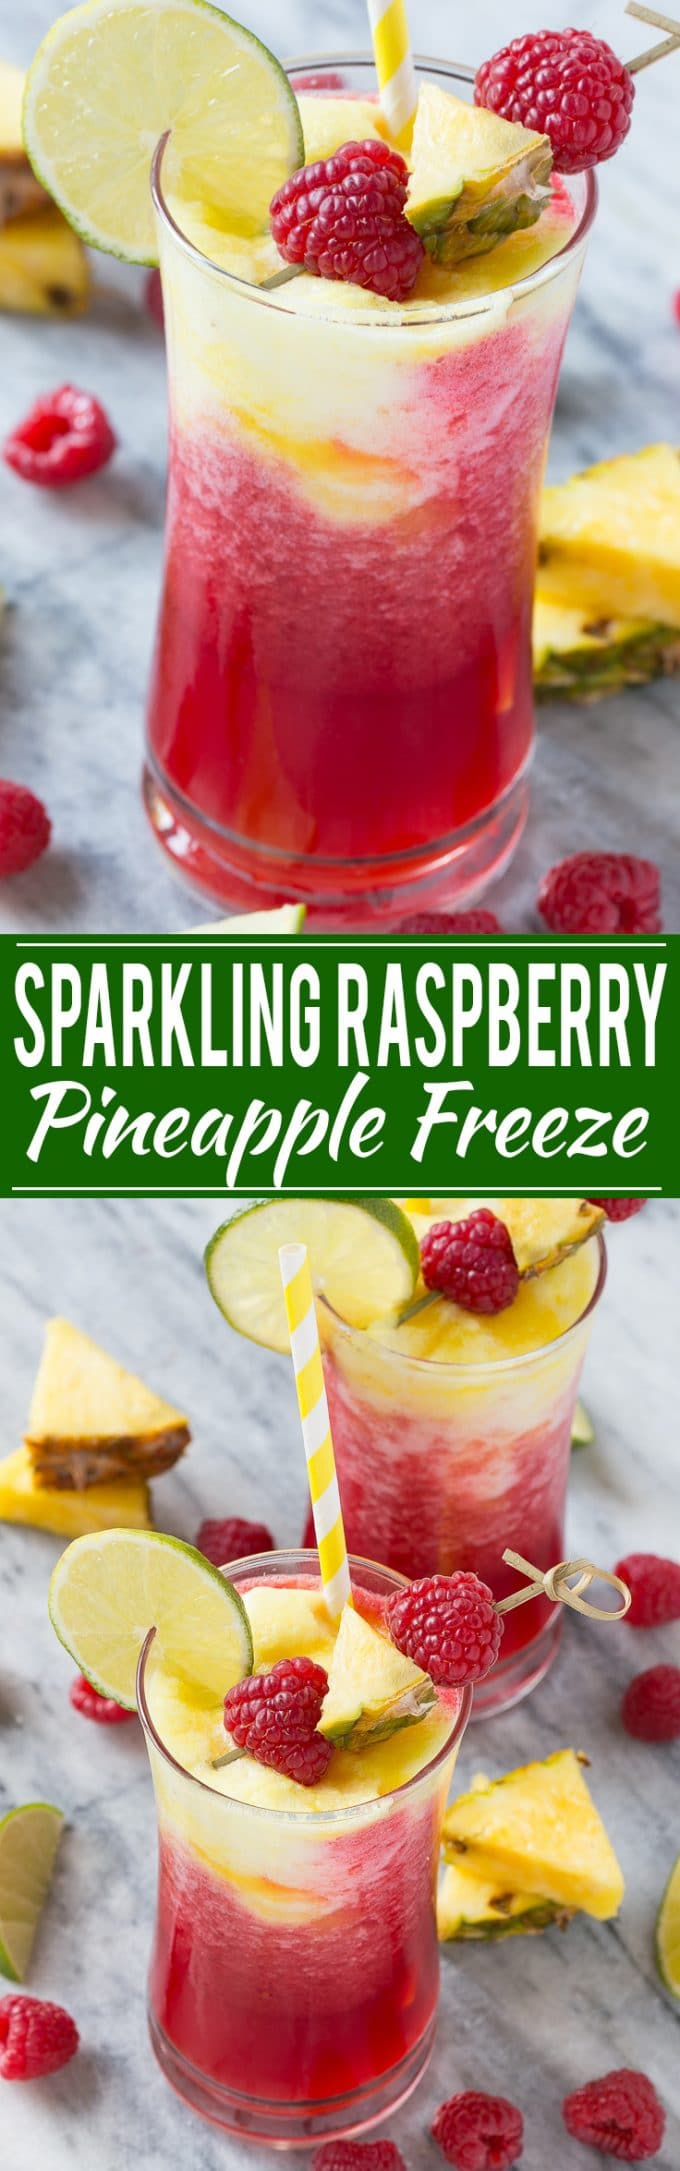 Sparkling Raspberry Pineapple Freeze Recipe | Raspberry Pineapple Freeze | Raspberry Pineapple Smoothie | Fruit Freeze Drink